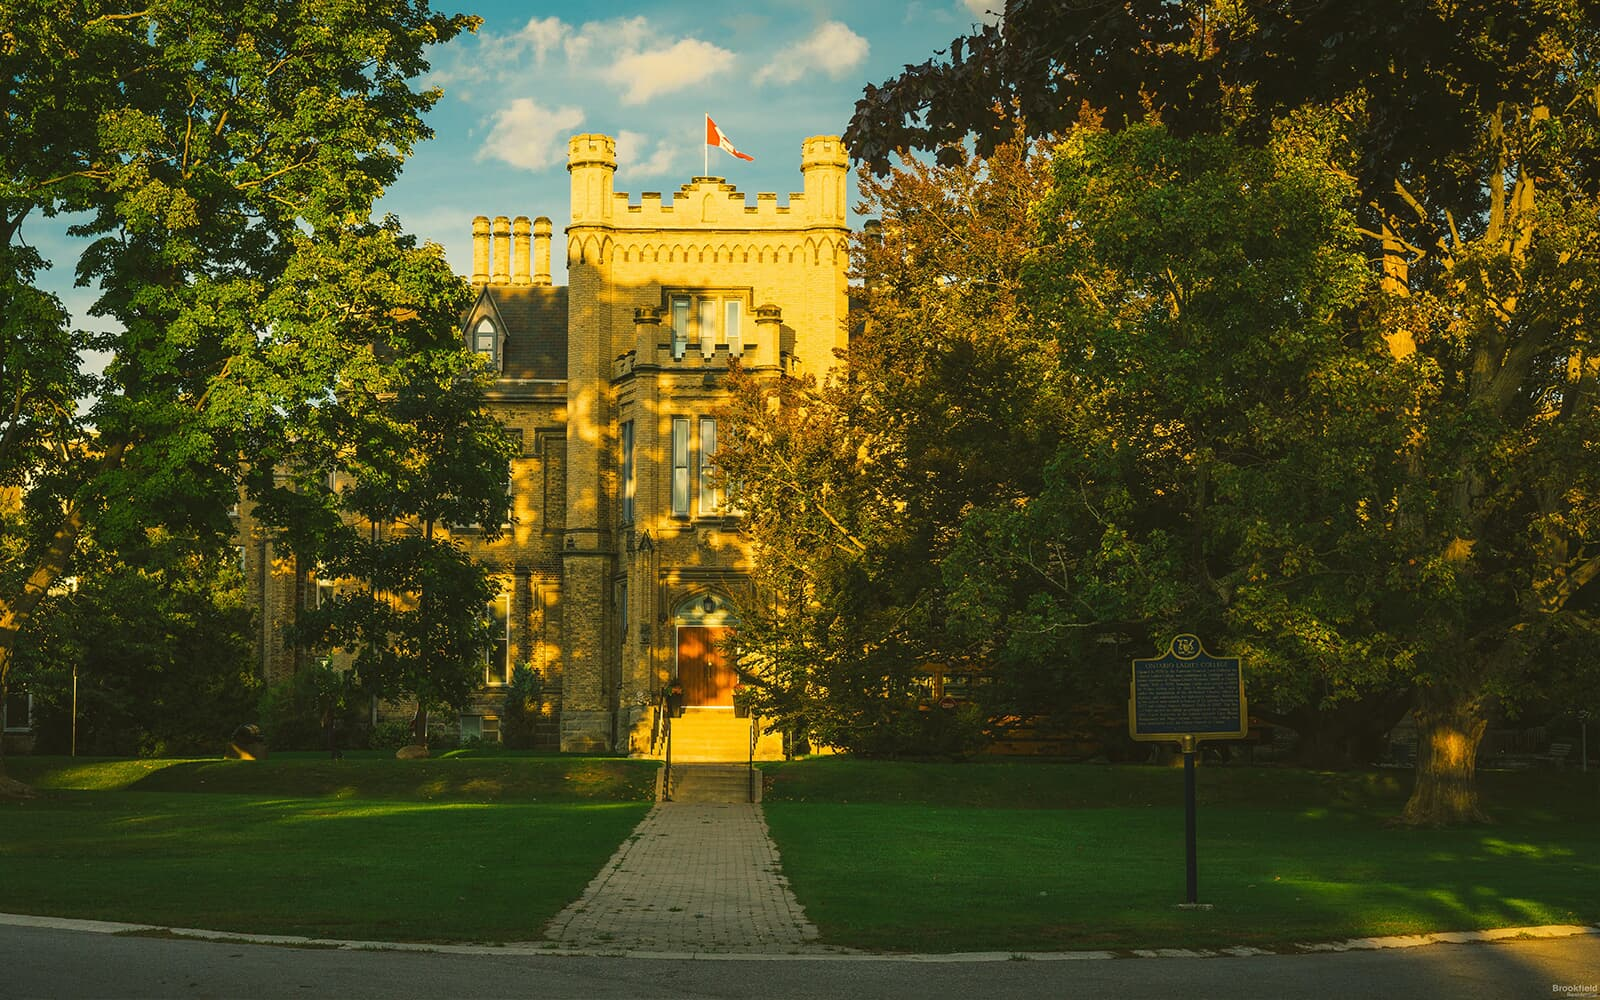 Ontario Ladies College Front Entrance Surrounded by Trees in Whitby, ON